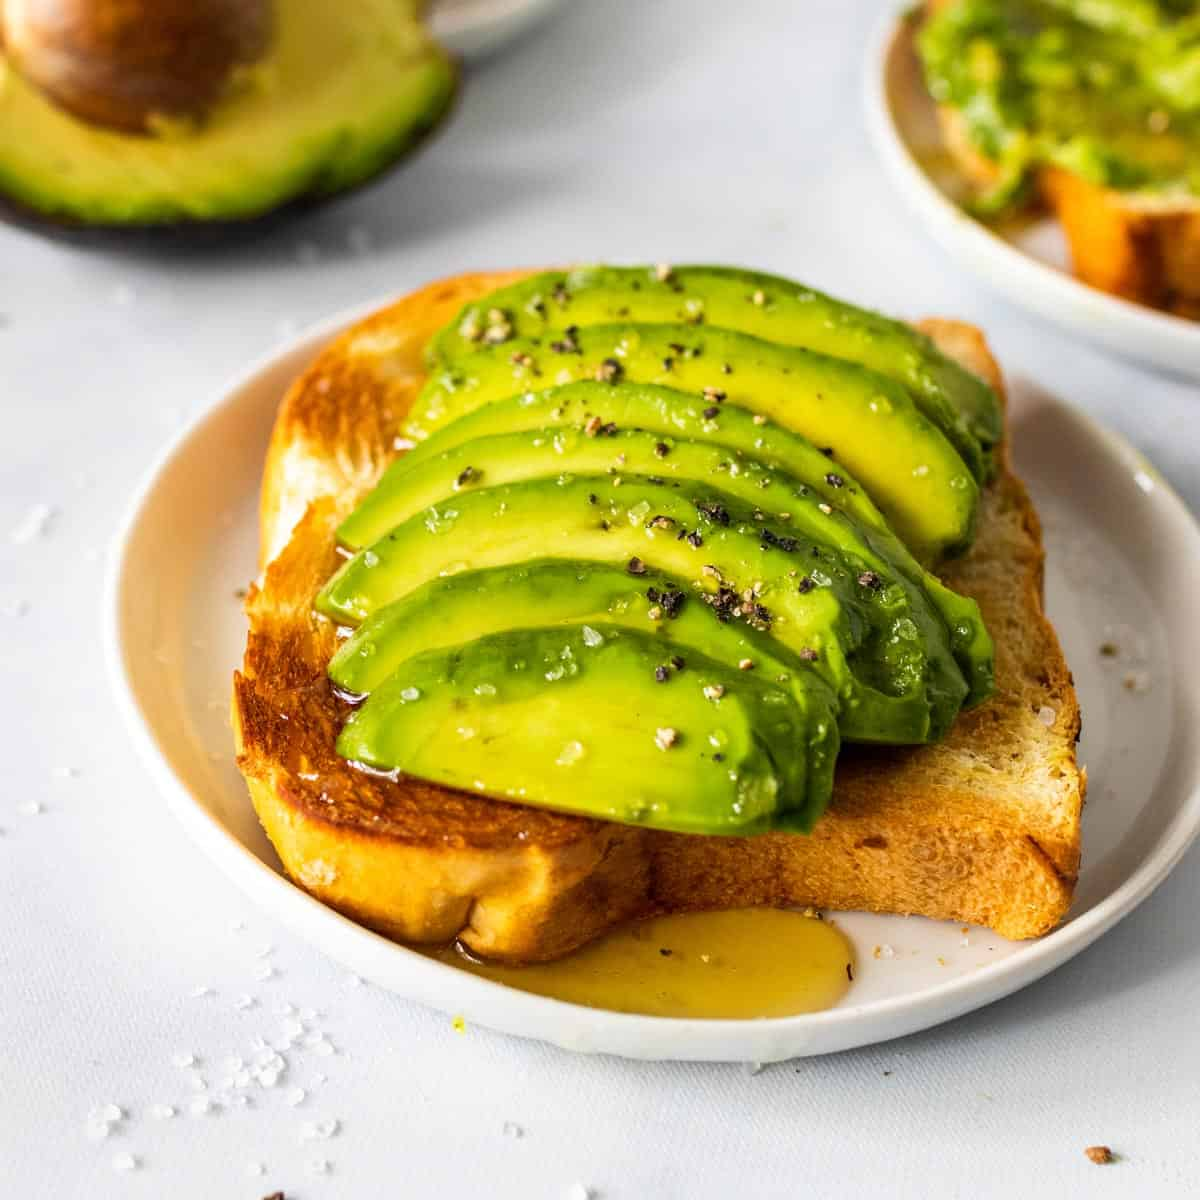 A slice of toast topped with thick slices of avocado, sea salt, course black pepper, and a drizzle of honey